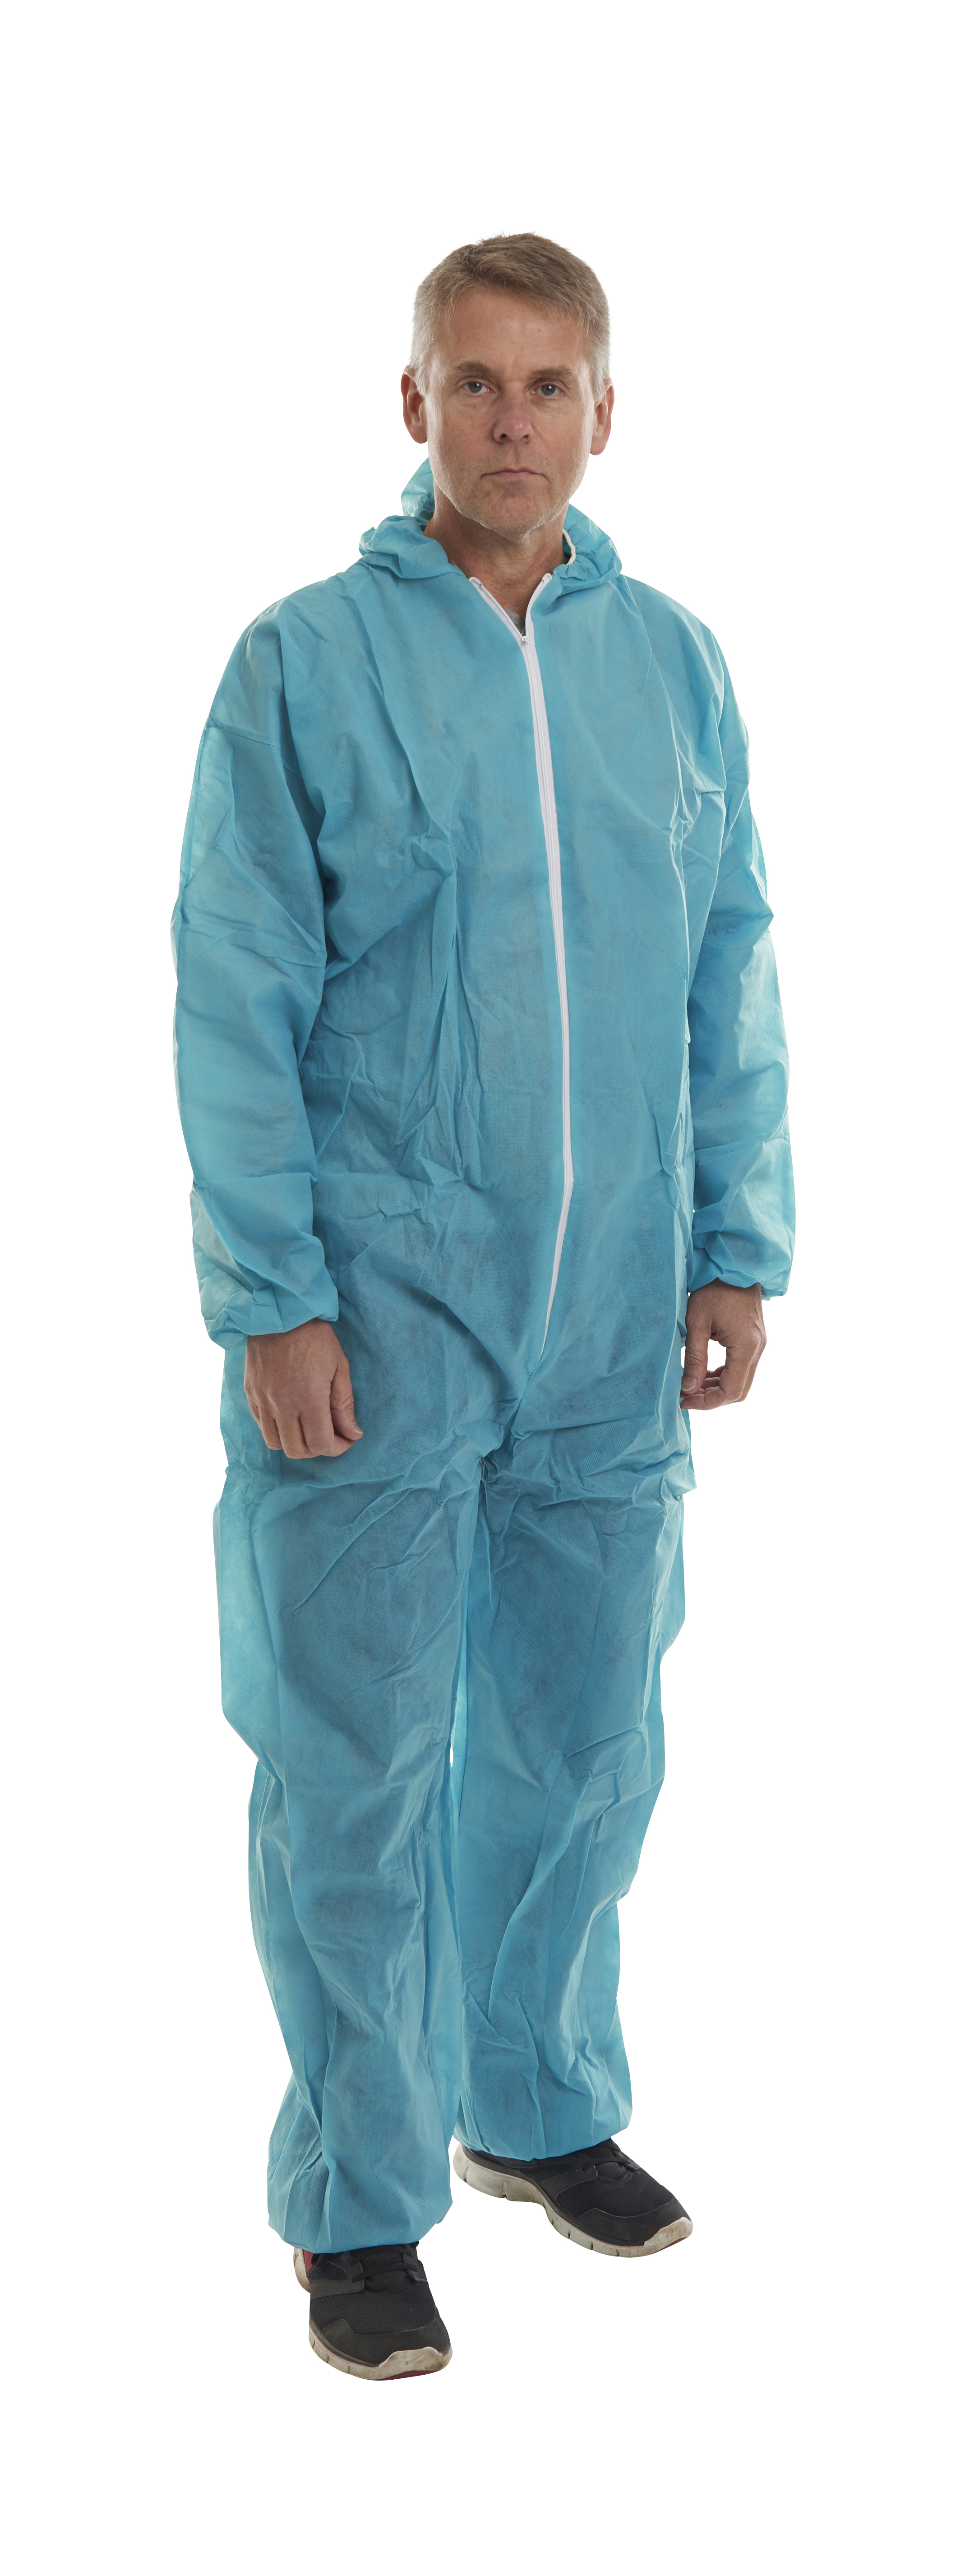 KRUTEX disposable suit, blue, L